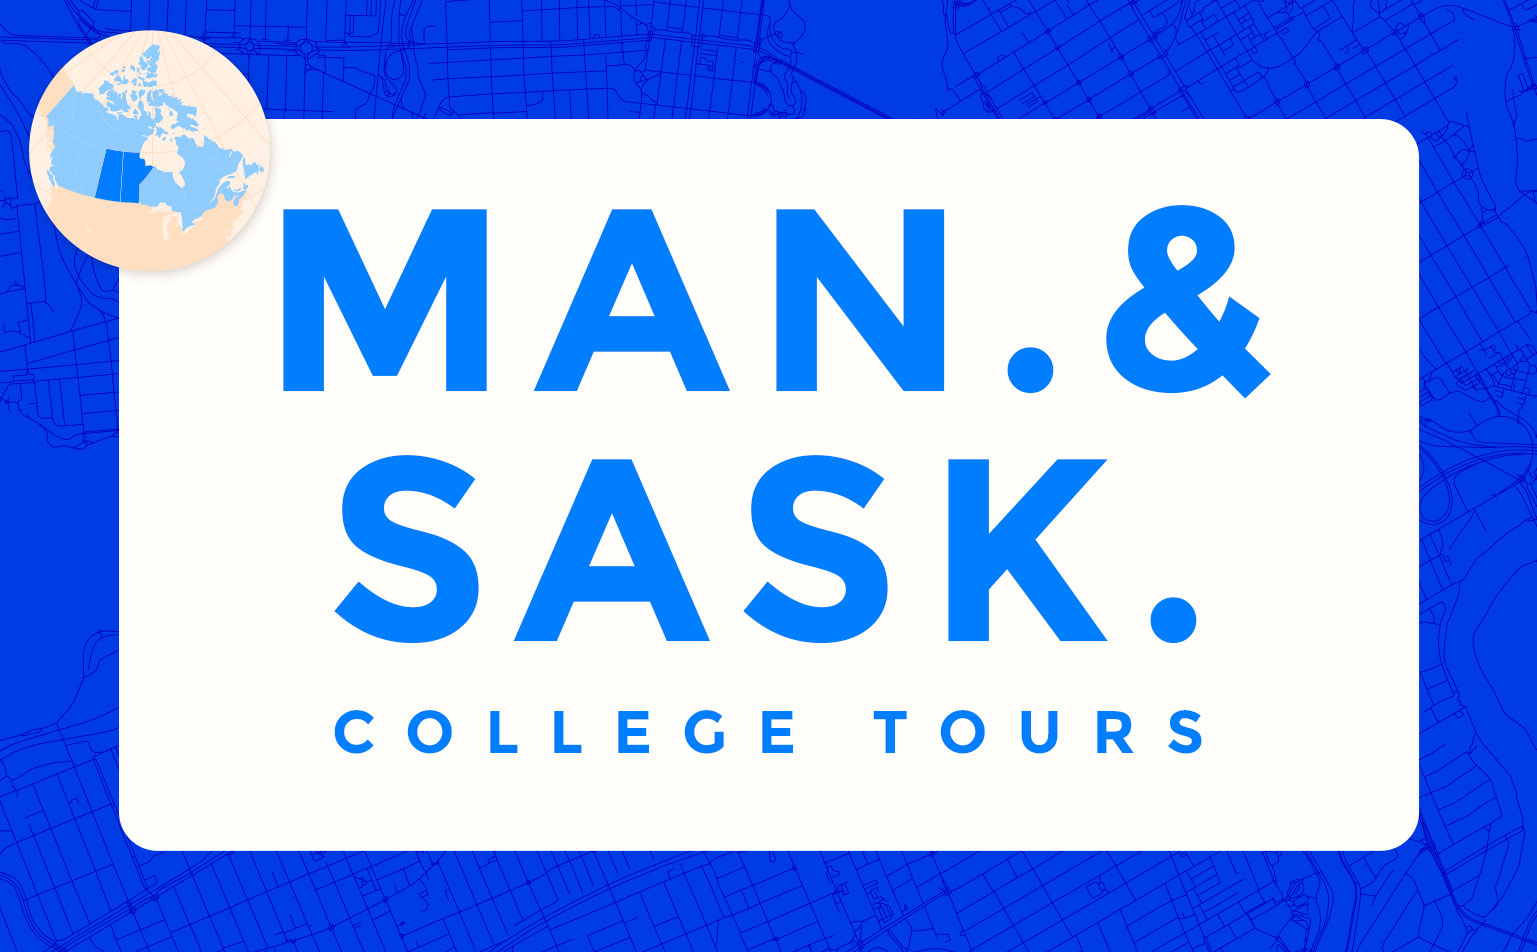 virtual campus university tours in saskatchewan manitoba